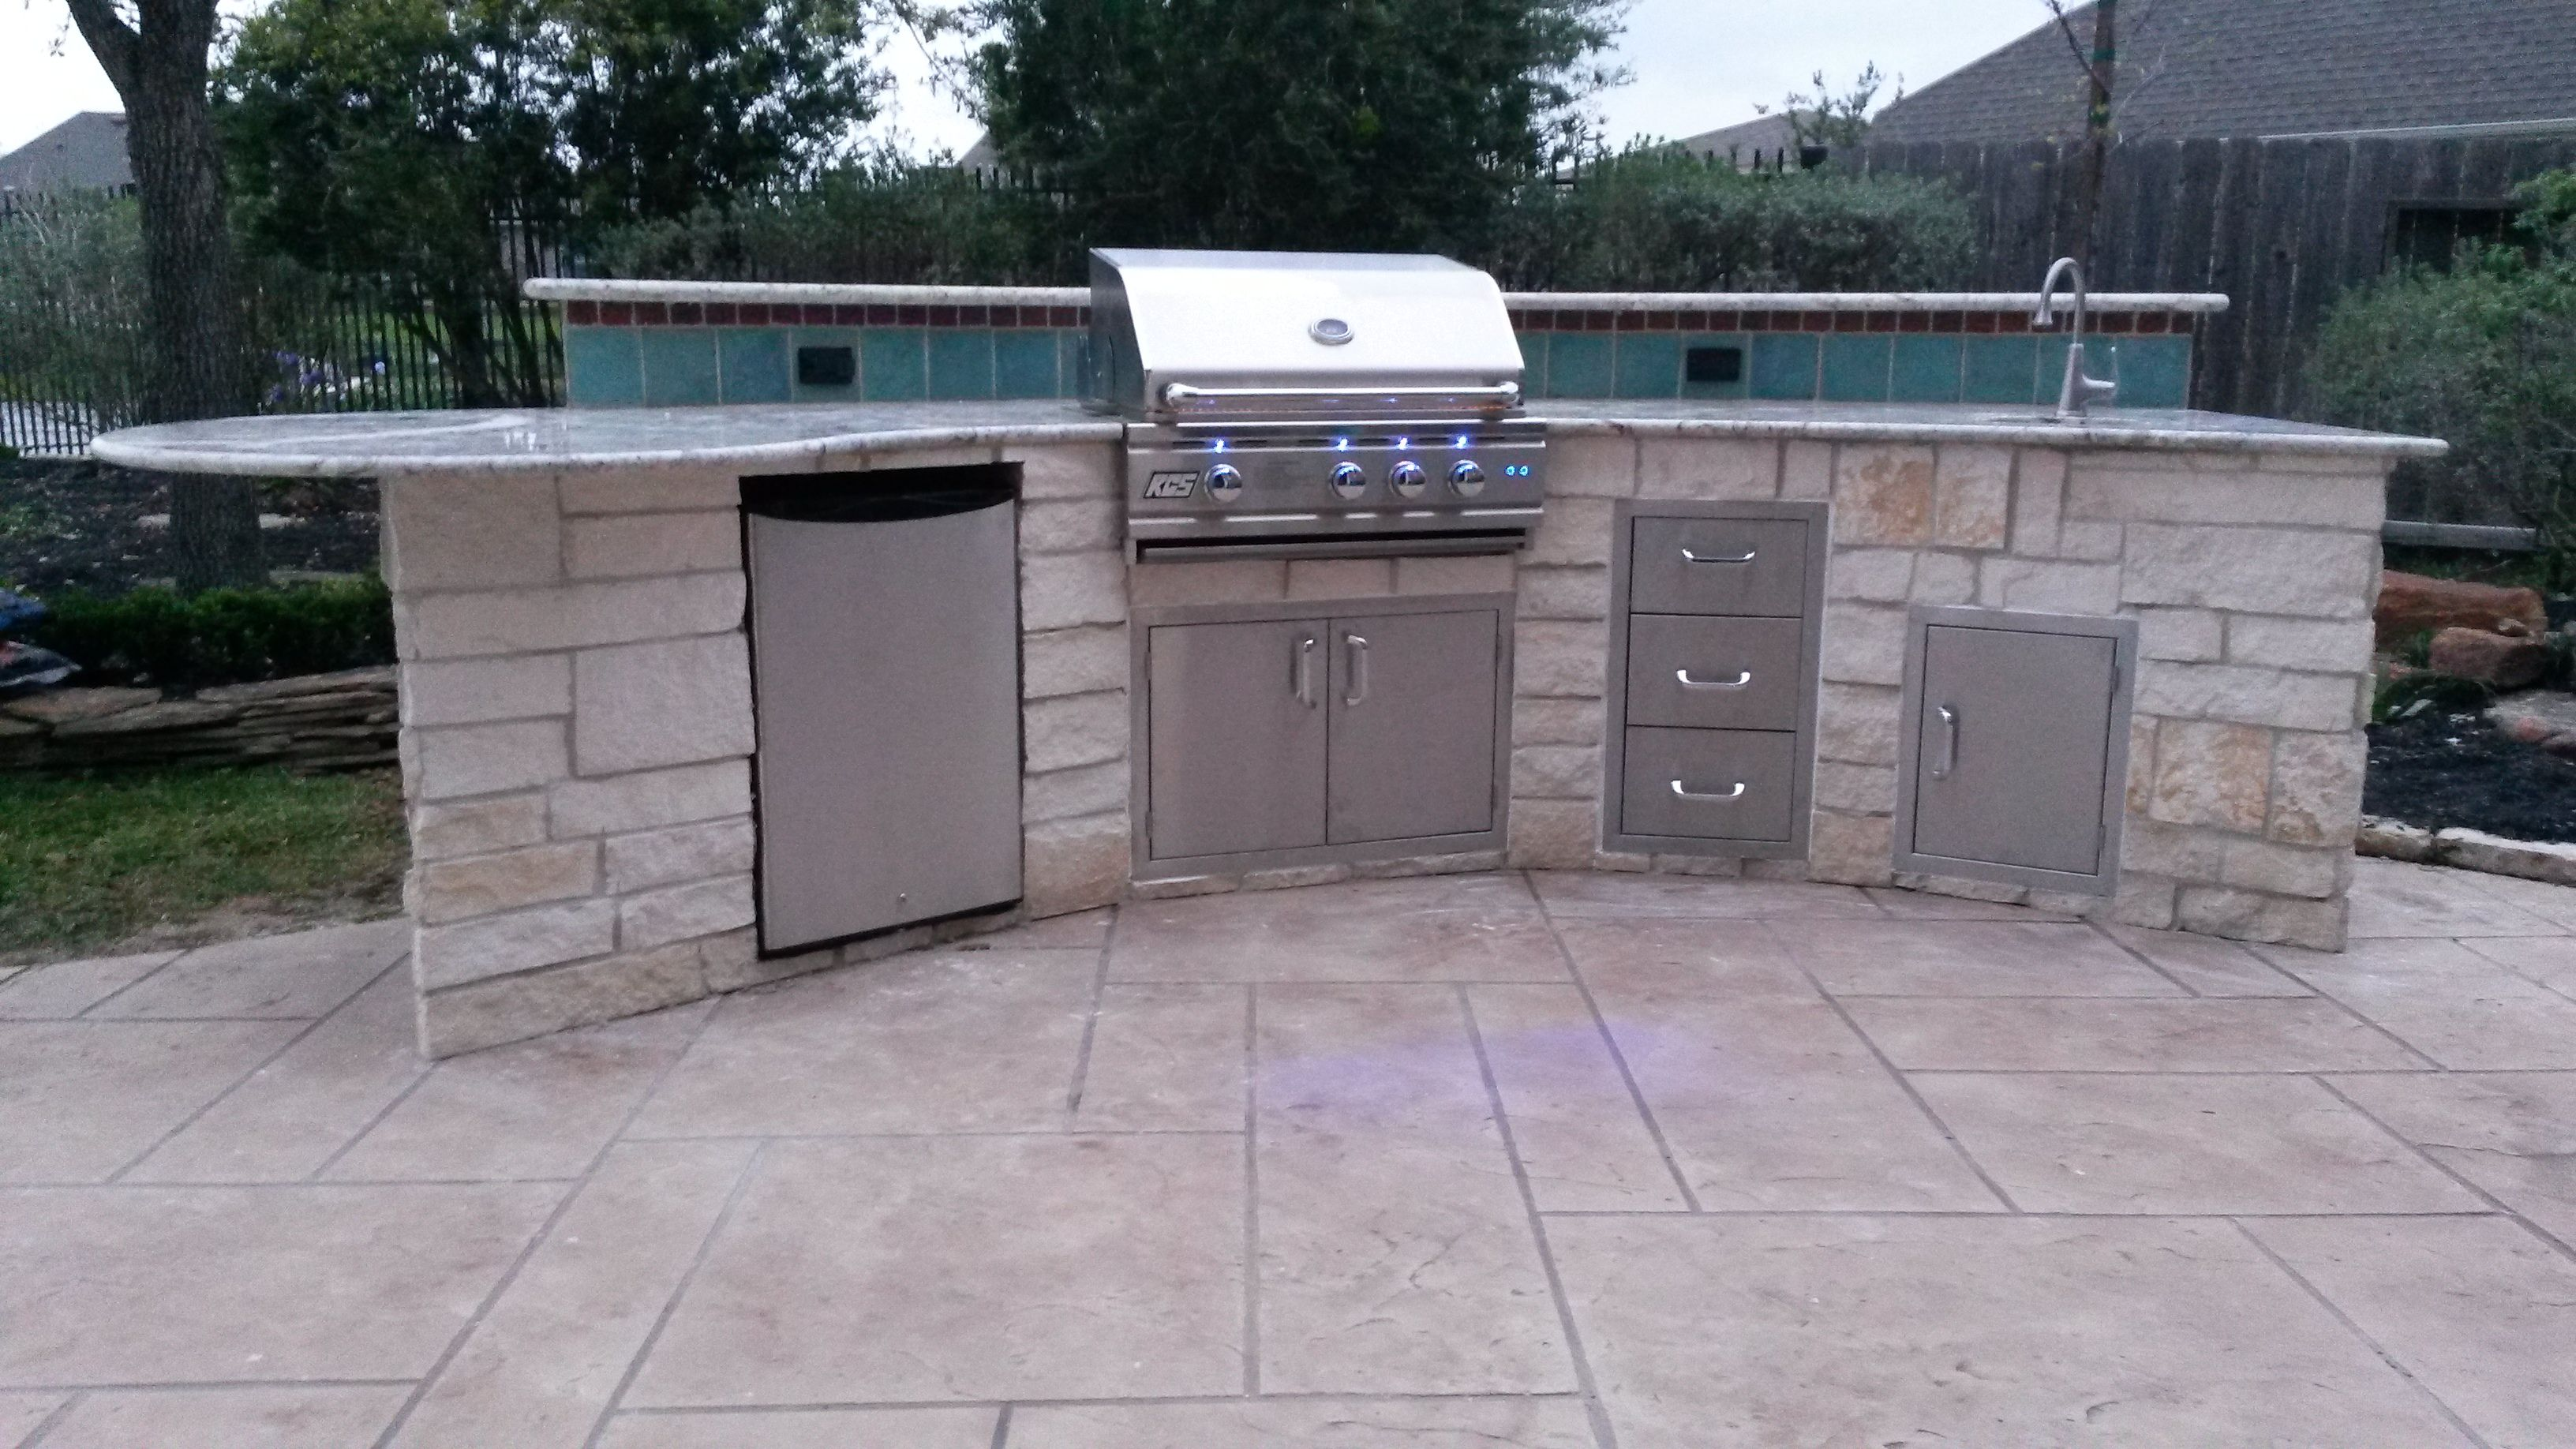 Outdoor Kitchen With Rcs Appliances By Increte Of Houston Outdoor Kitchen Outdoor Furniture Sets Outdoor